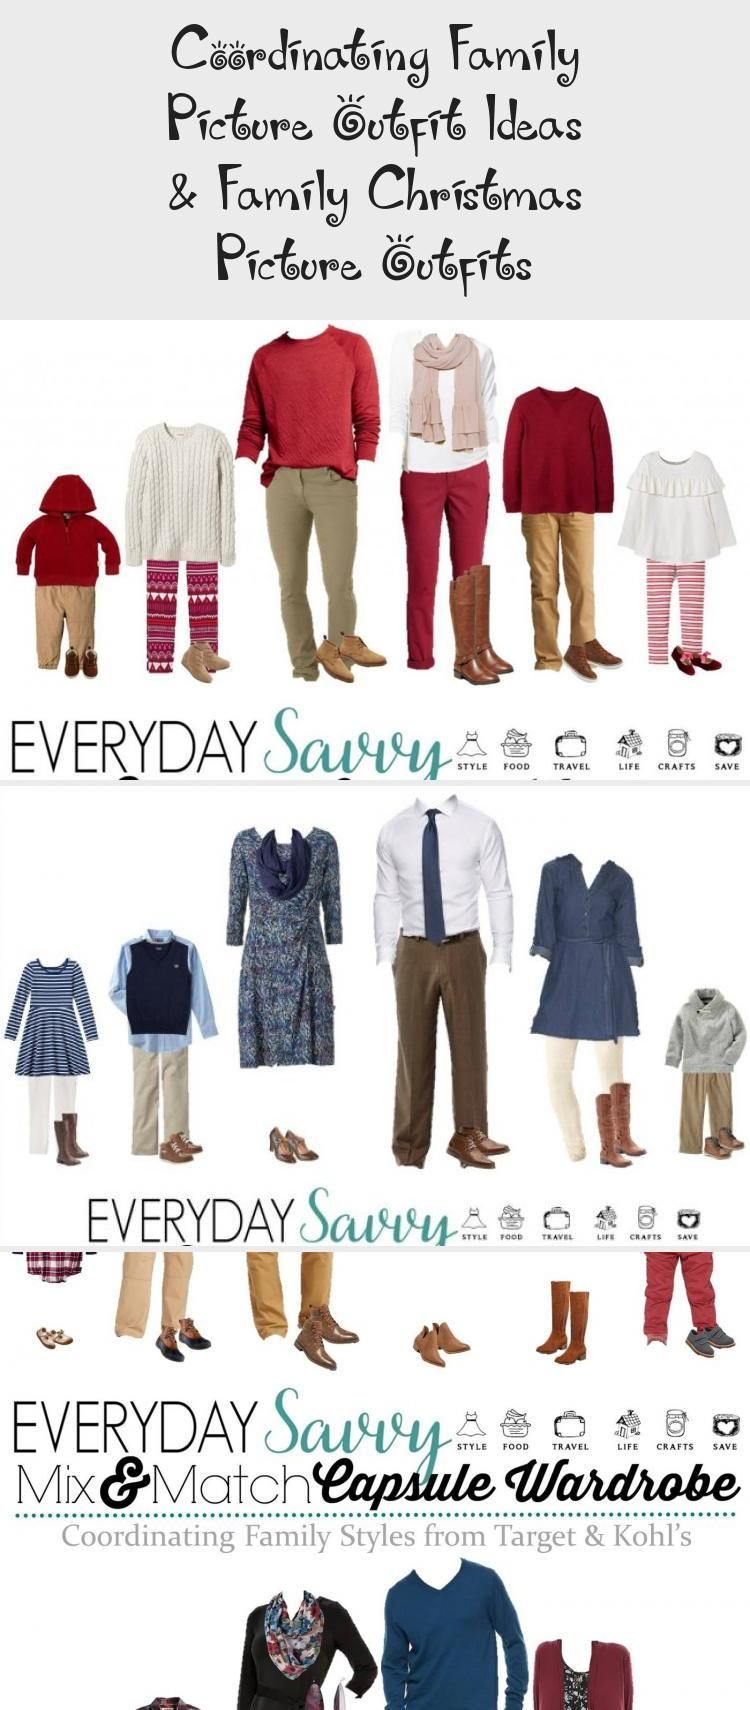 Coordinating Family Picture Outfit Ideas & Family Christmas Picture Outfits - Holidays | ETK #familyphotooutfits